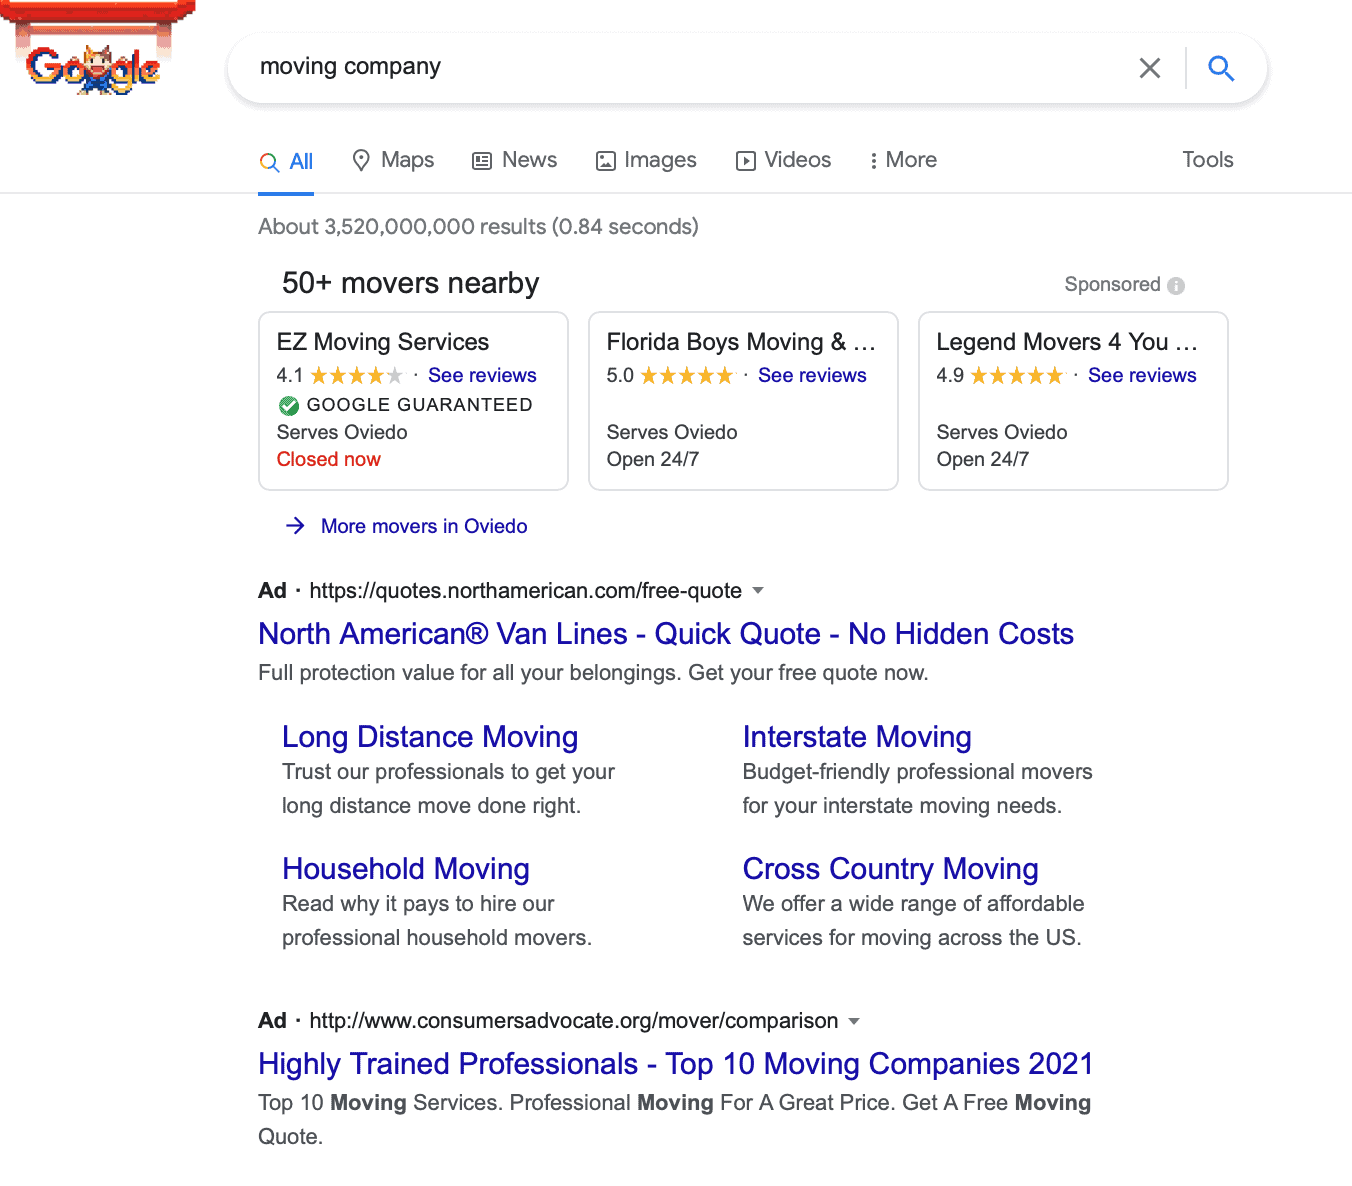 Google search results showing different ads